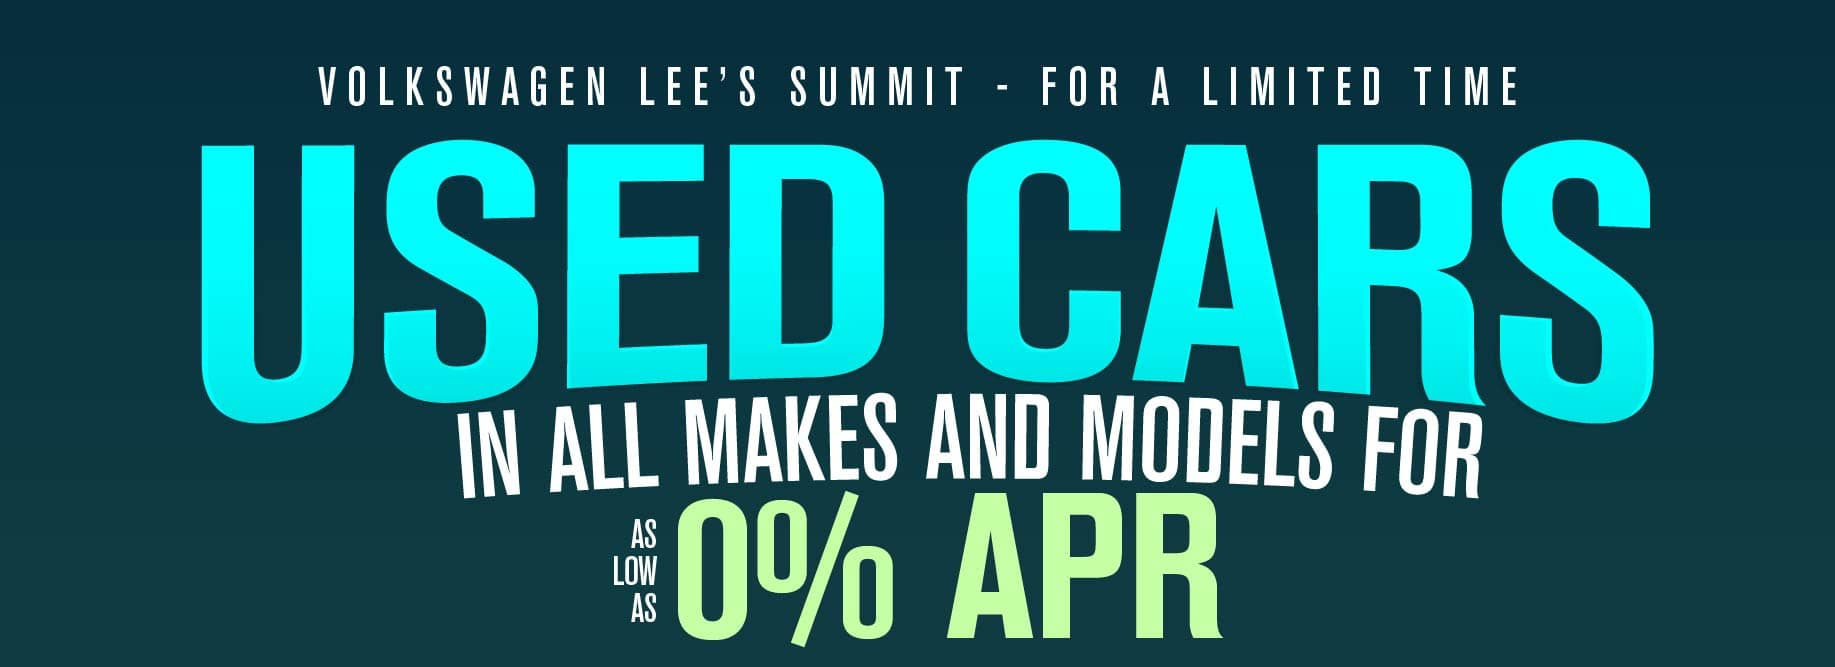 Get as low as 0% APR on used cars at Volkswagen Lee's Summit!